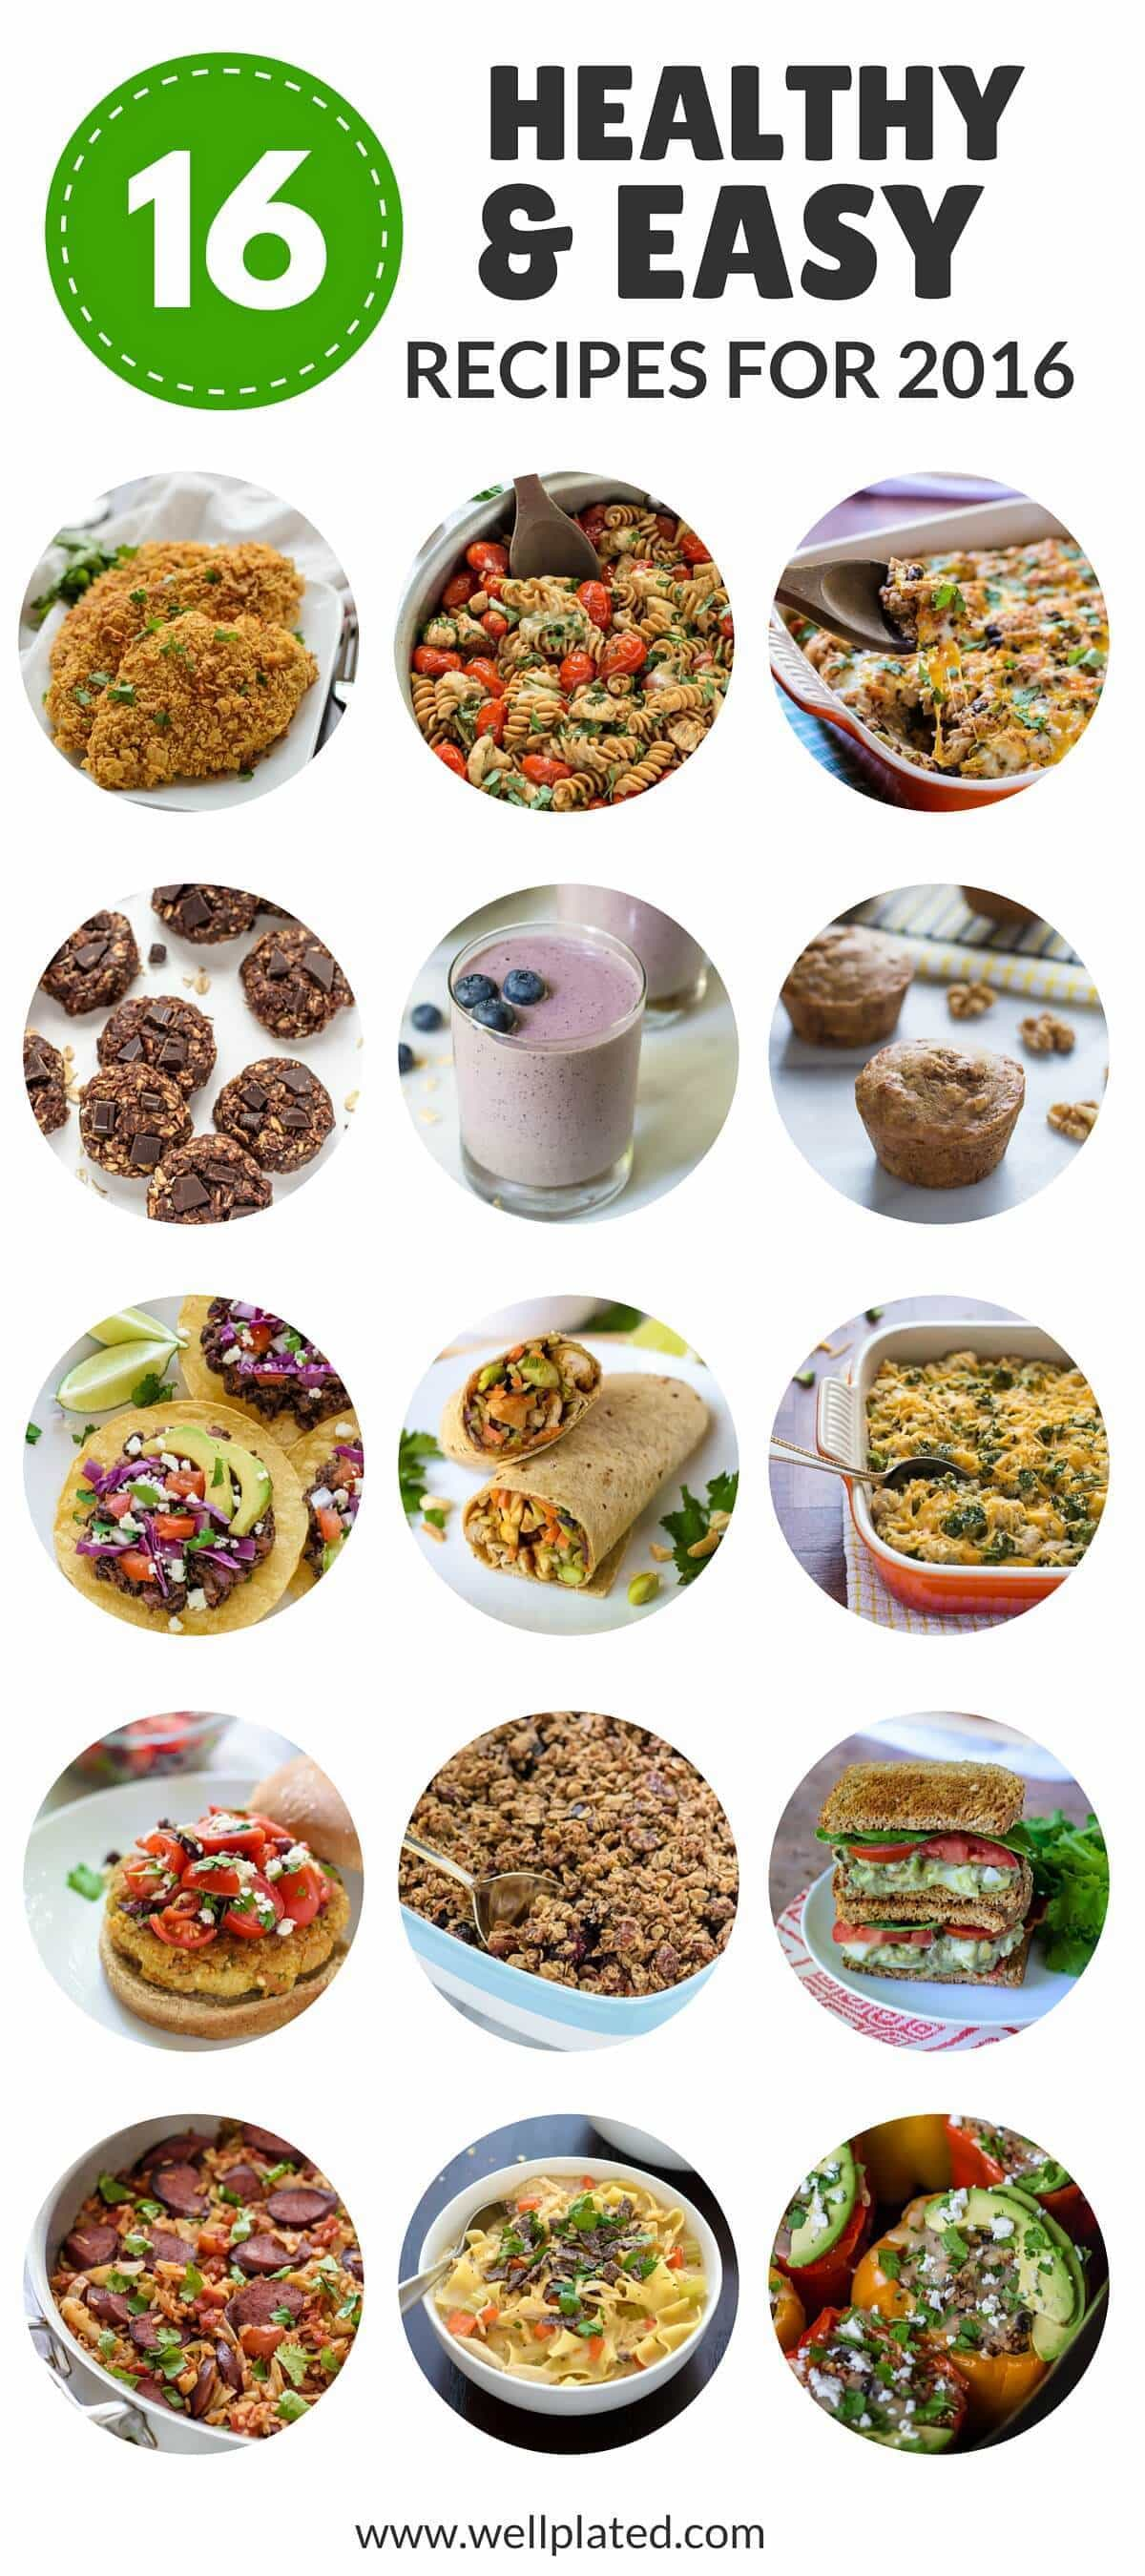 16 easy healthy recipes to try in 2016 | well plated by erin